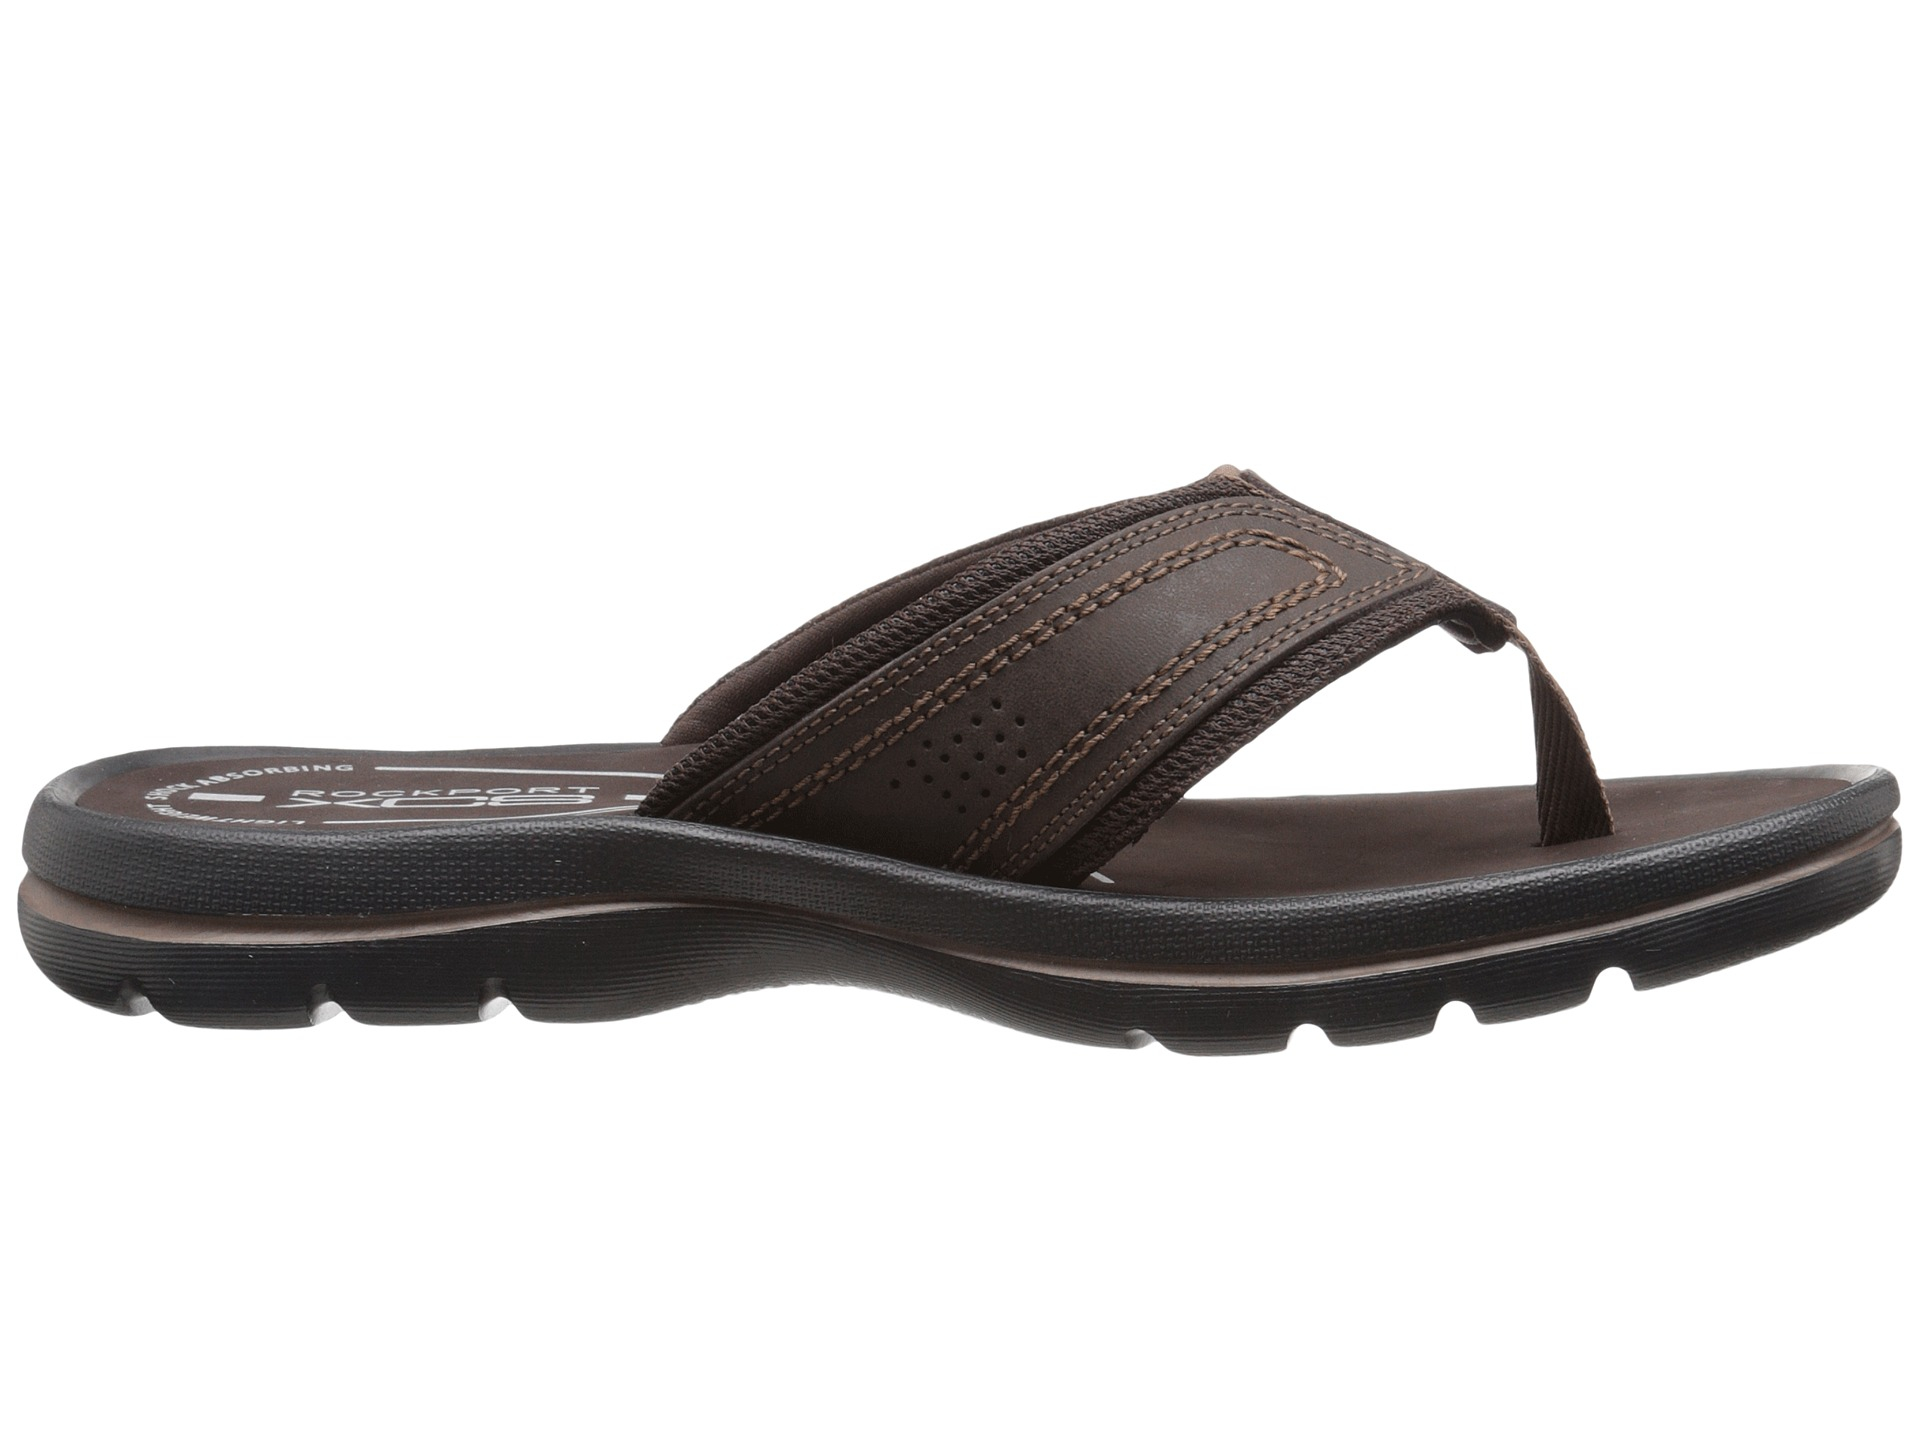 Rockport Get Your Kicks Sandals Thong In Brown For Men Lyst